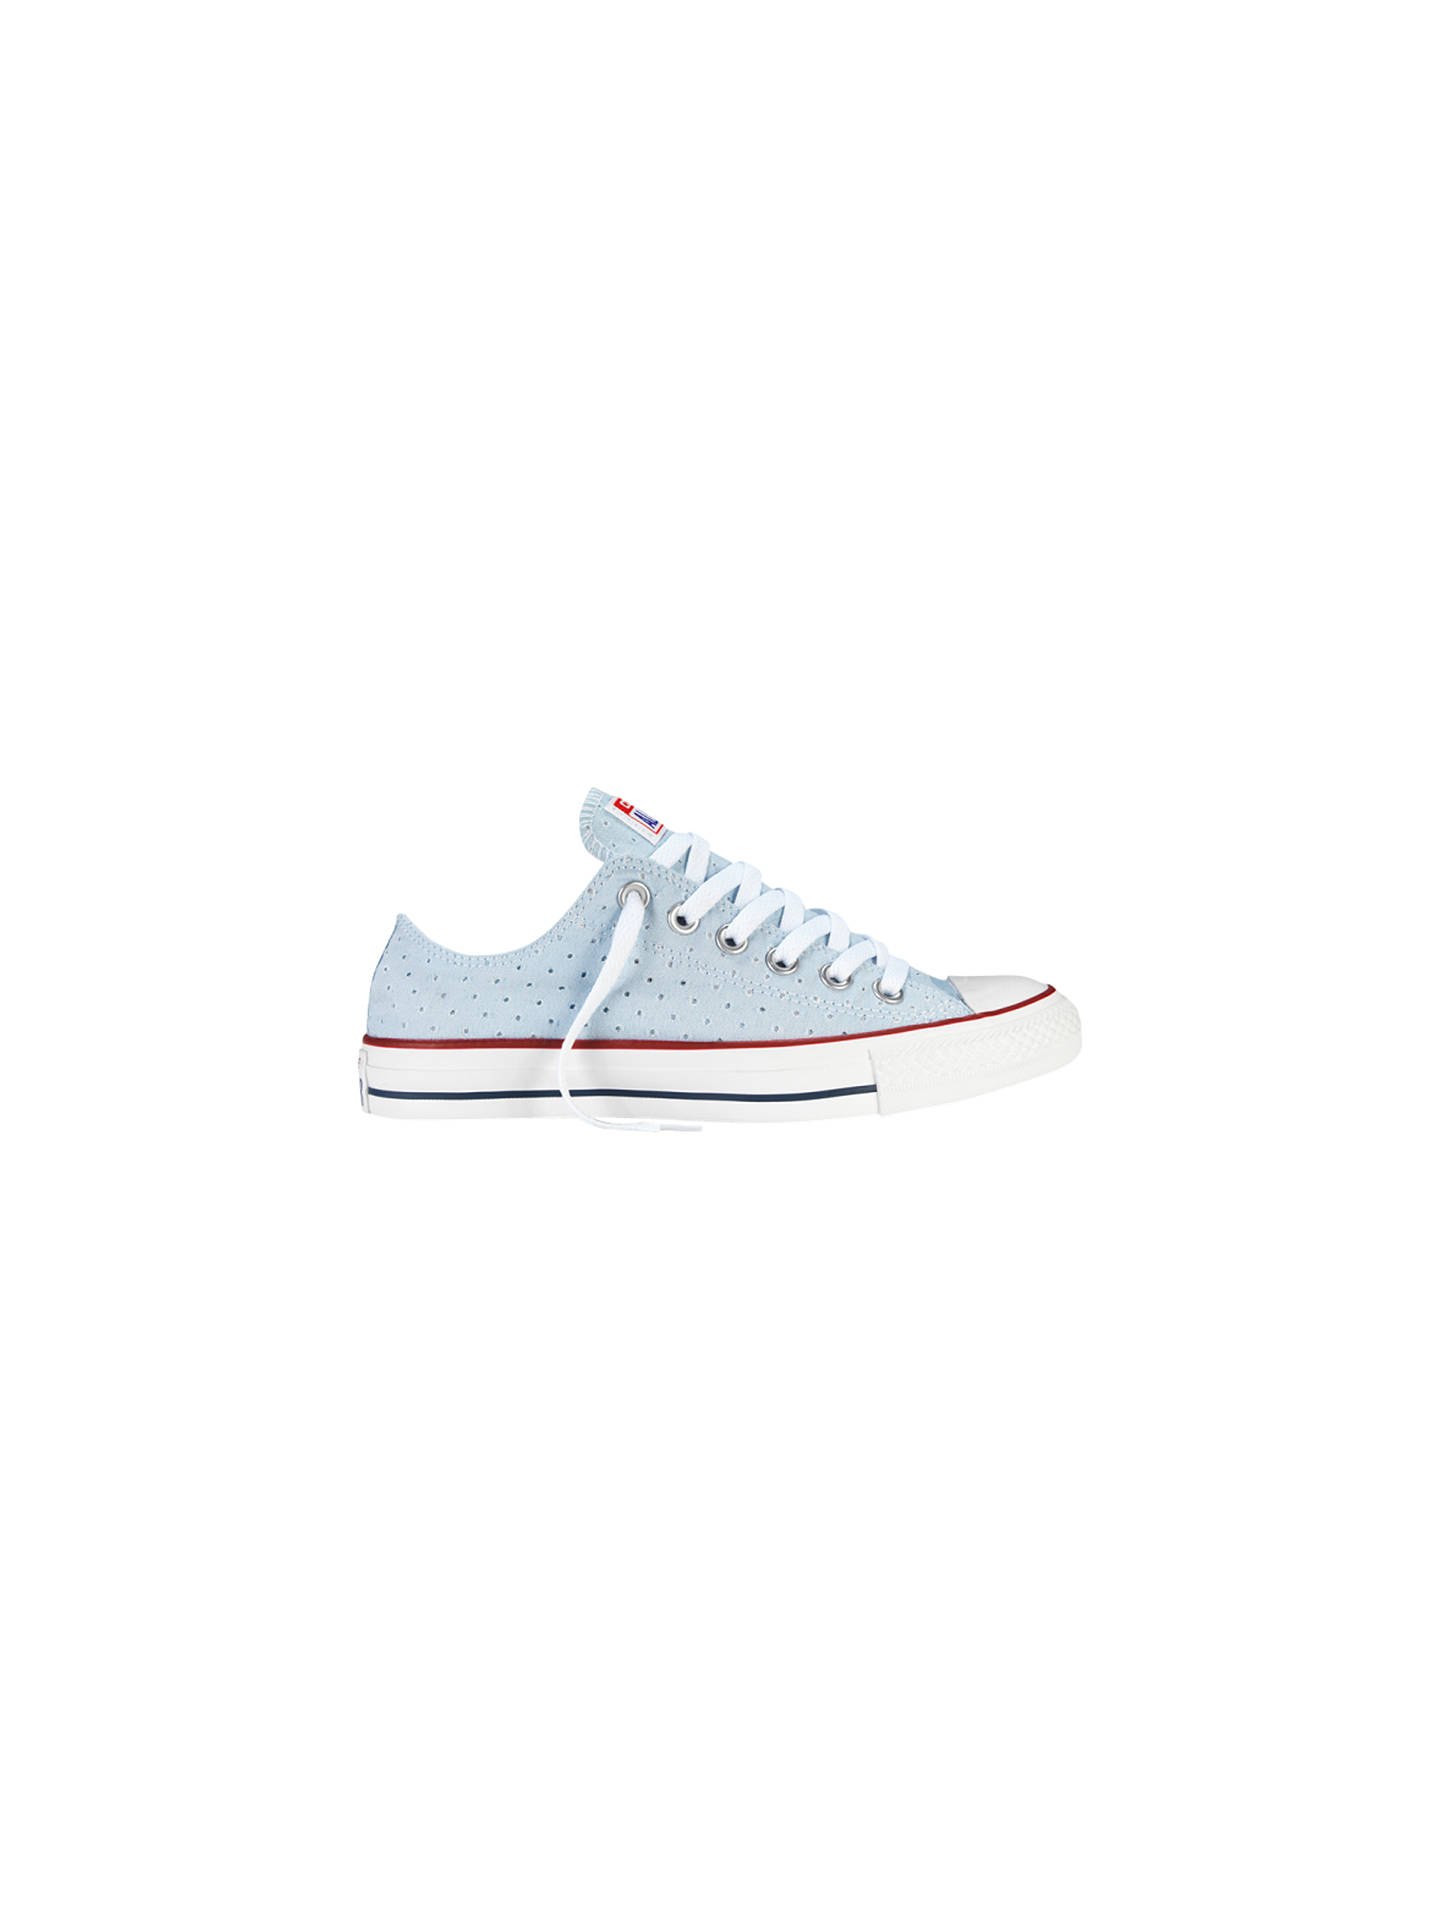 e74a71f3d75f Converse All Star Chuck Taylor Canvas Summer Ox Low-Top Trainers ...